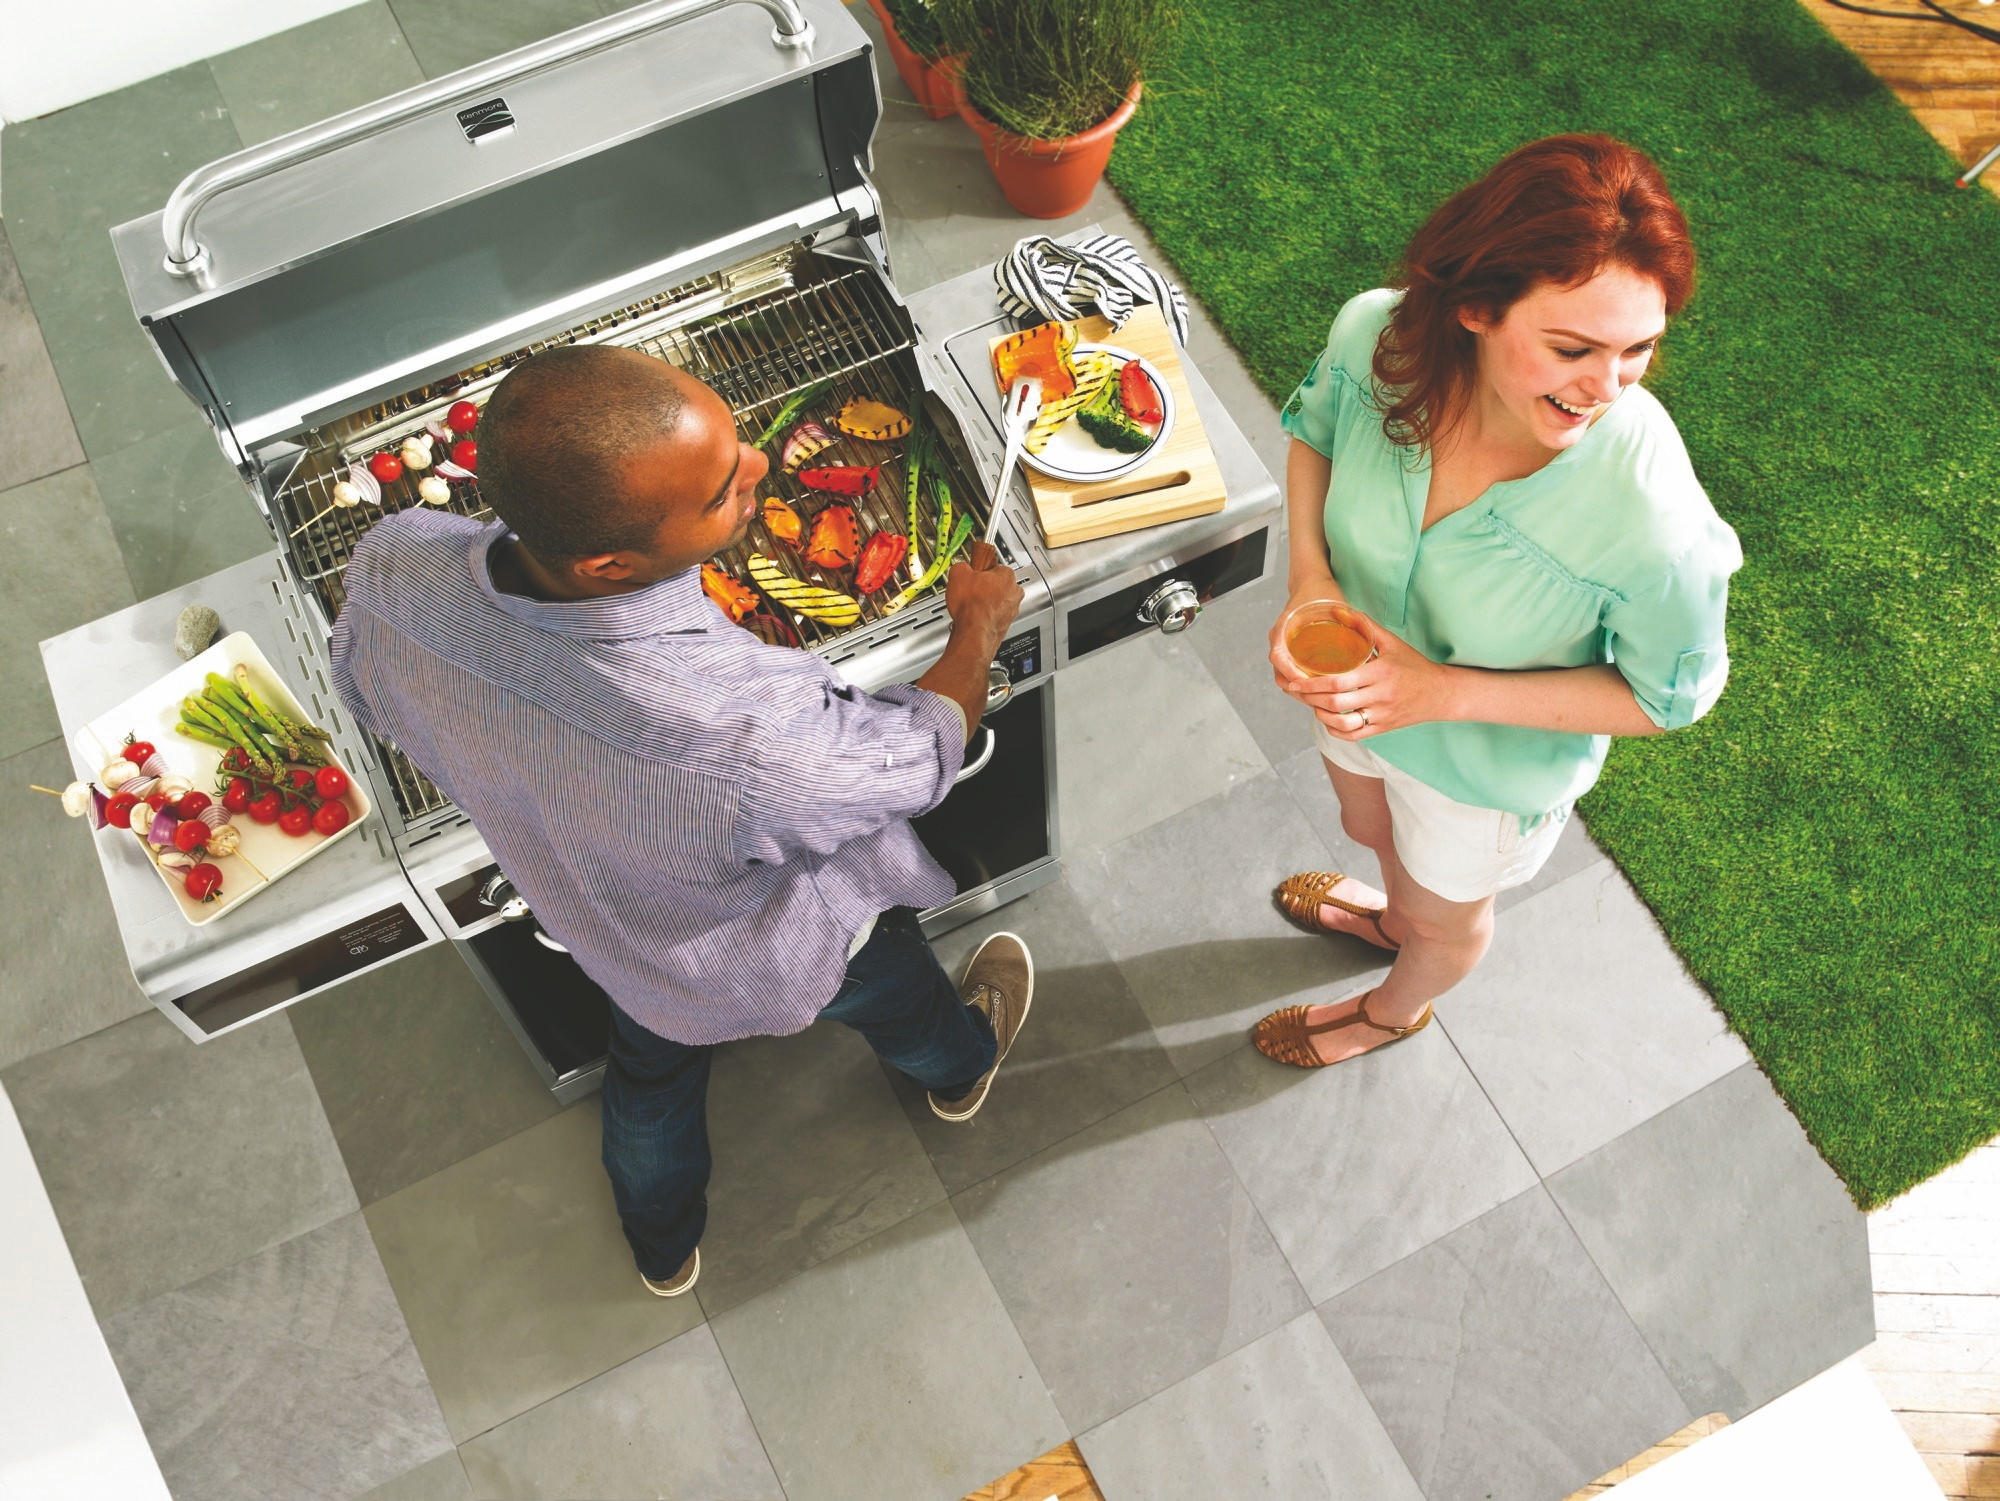 Sales on grills are down in recent years and prices have mostly stalled, which is good news if you need a new gas grill.